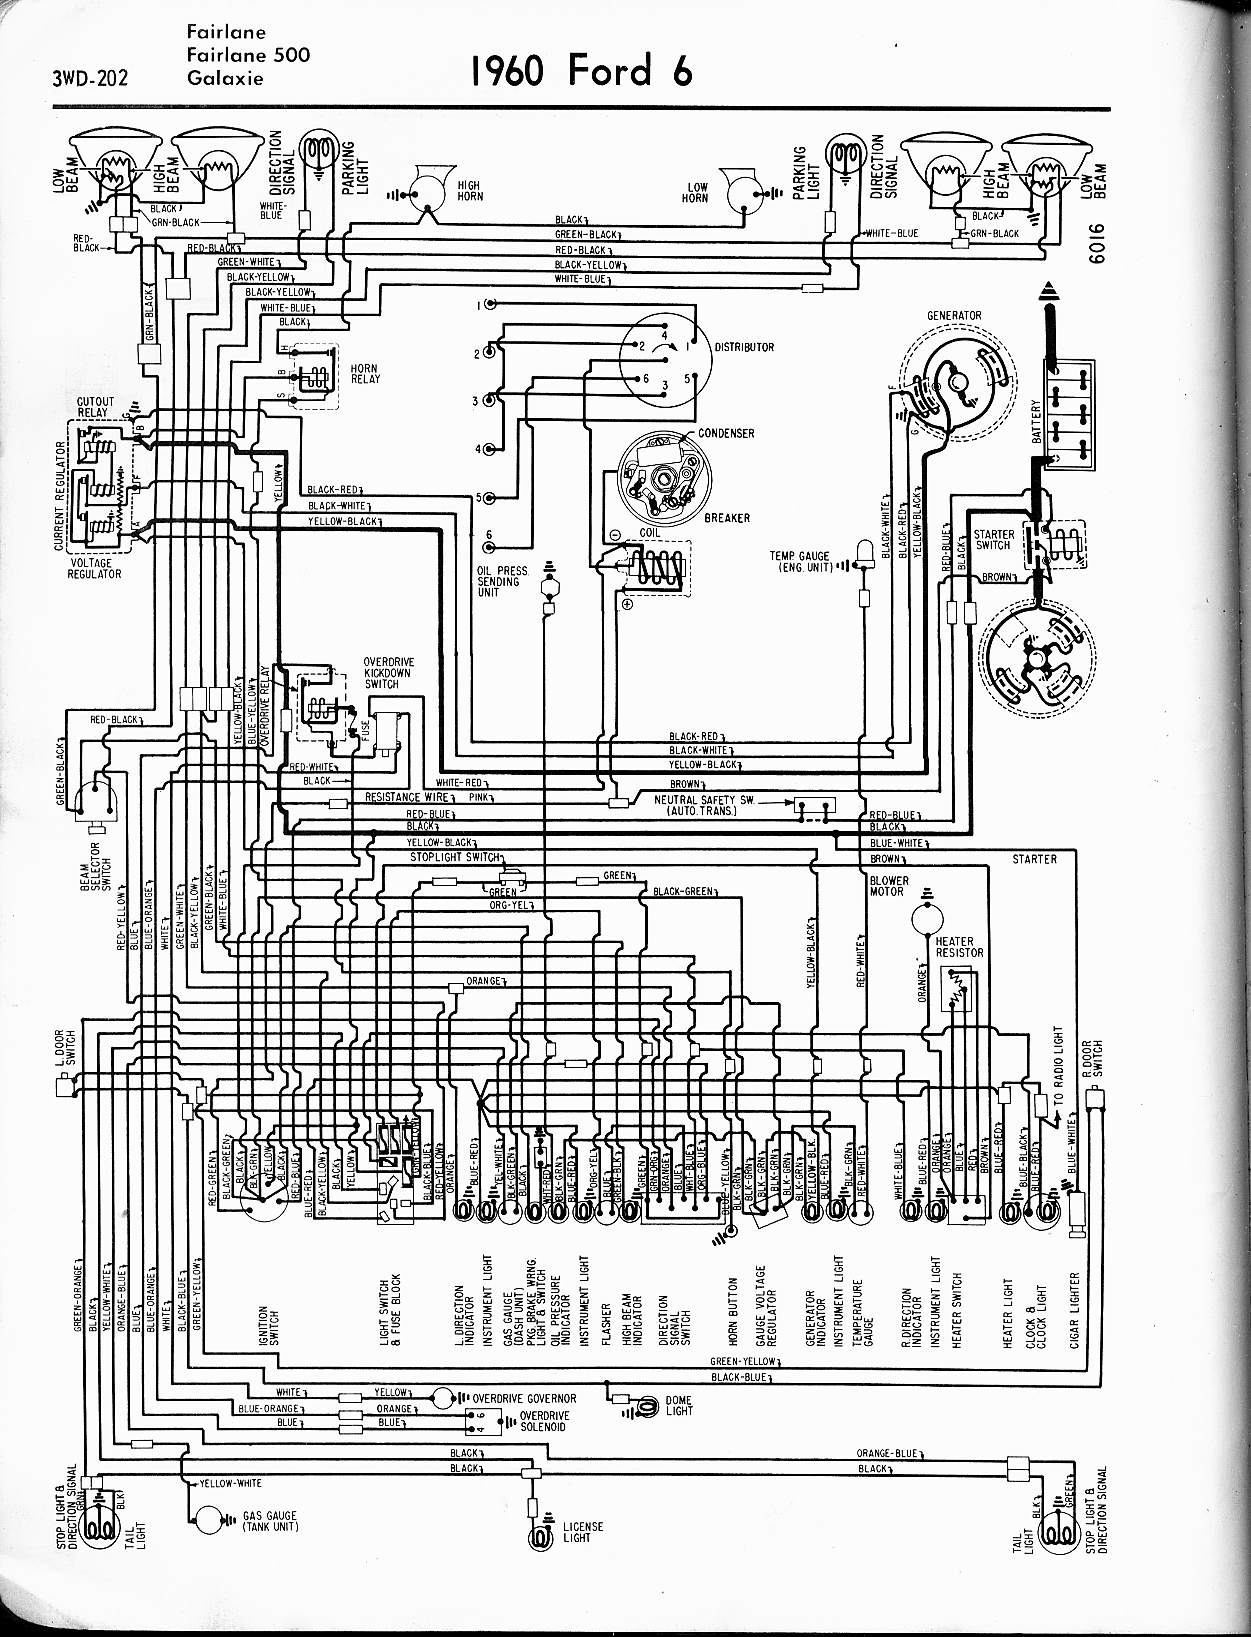 1960 Ford Wiring Diagram Wiring Diagram Schematics Dodge Truck Audio Dodge  Truck Wiring Shortage